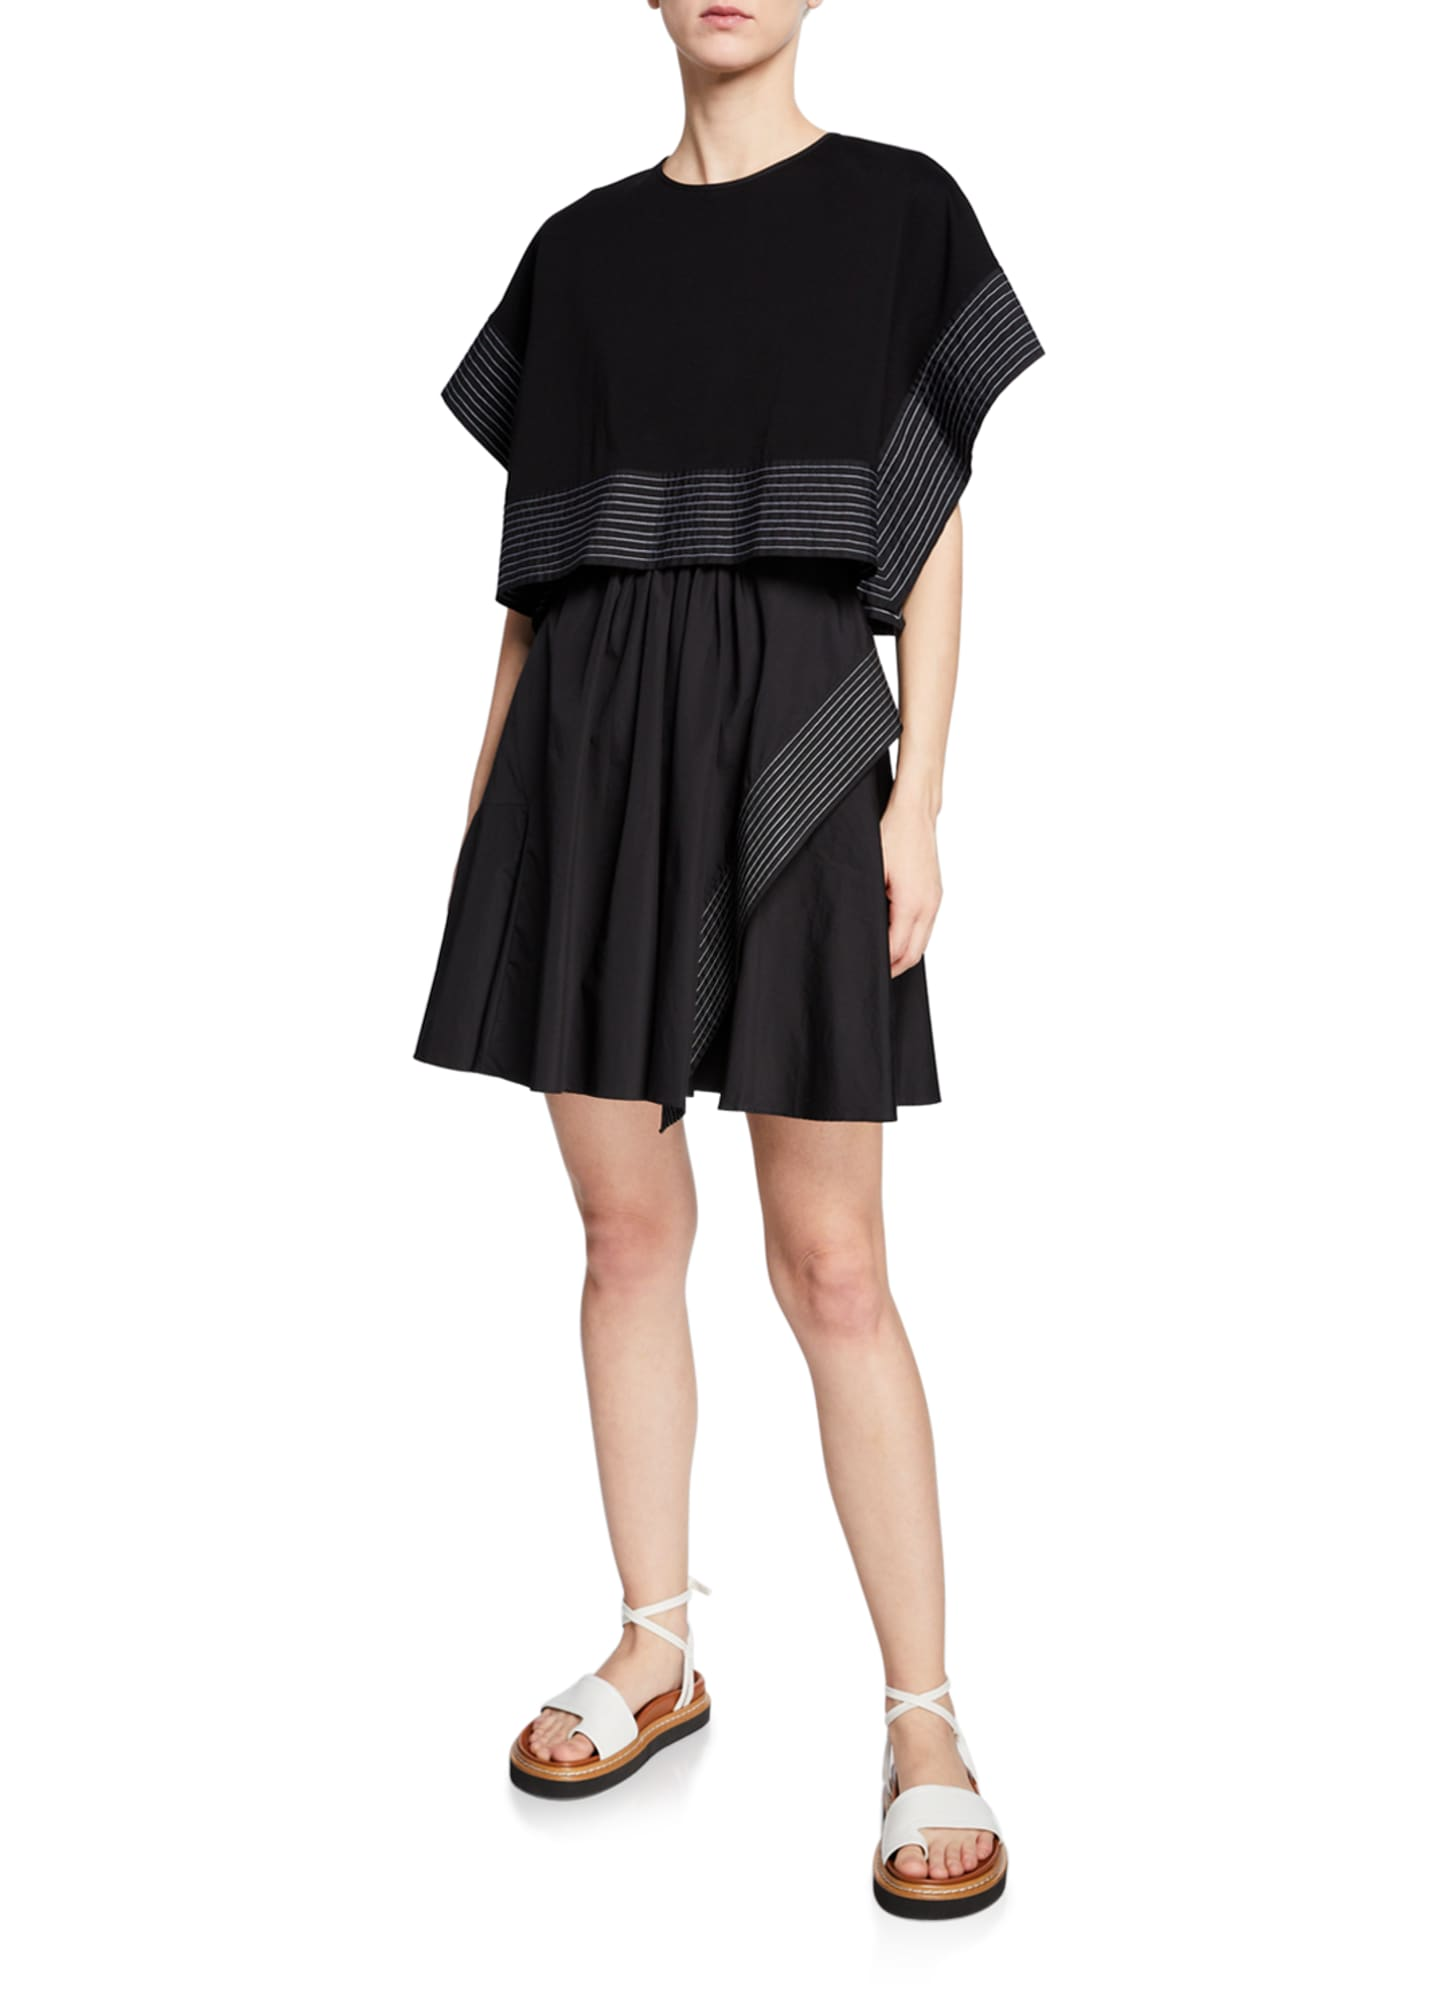 3.1 Phillip Lim Poplin Sleeveless Dress with Boxy